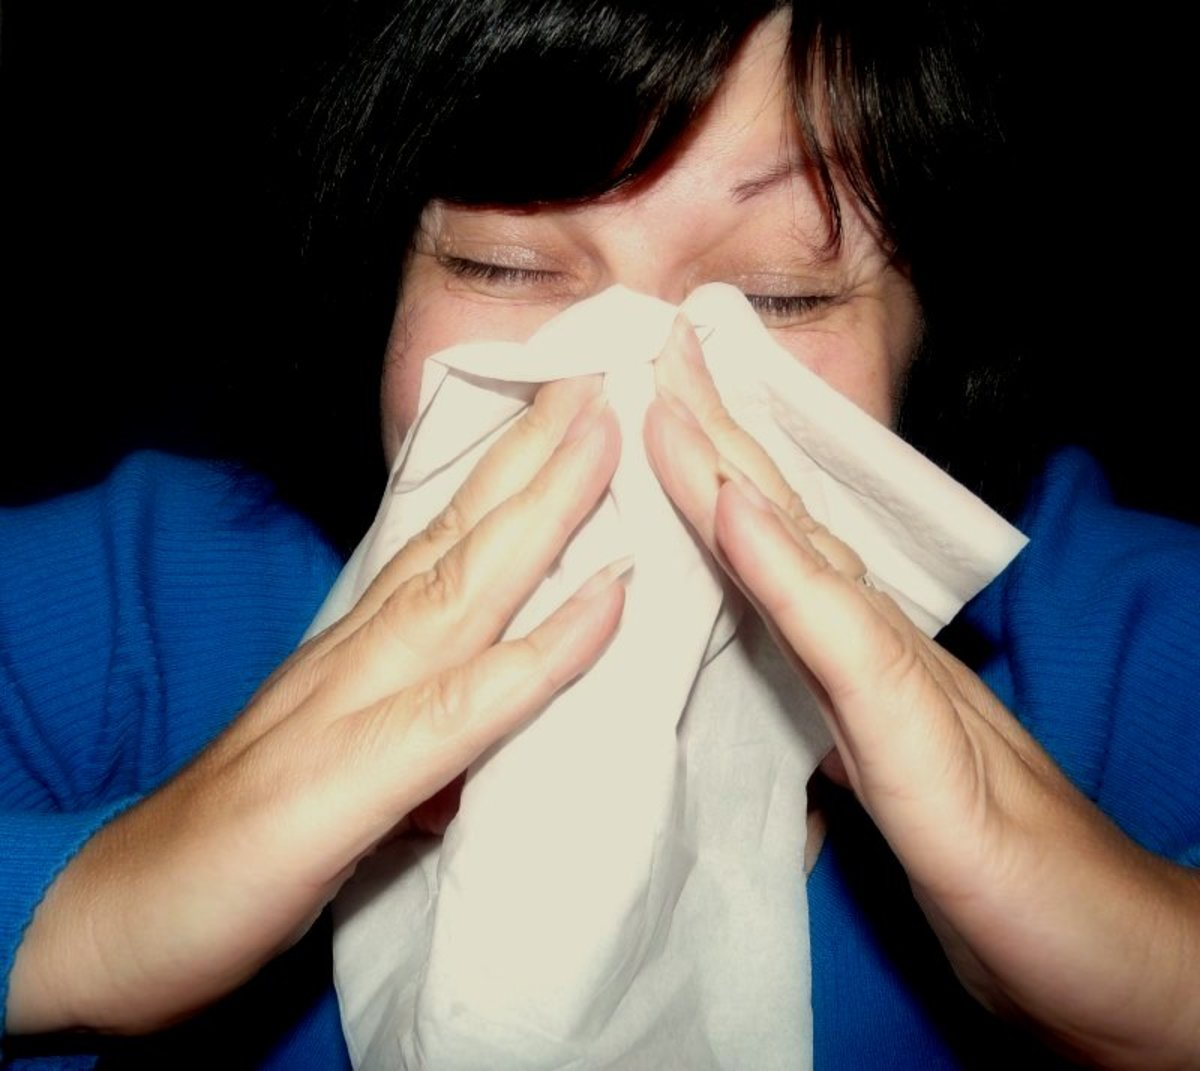 How I Cure a Cold and the Flu in One Day With Natural Remedies